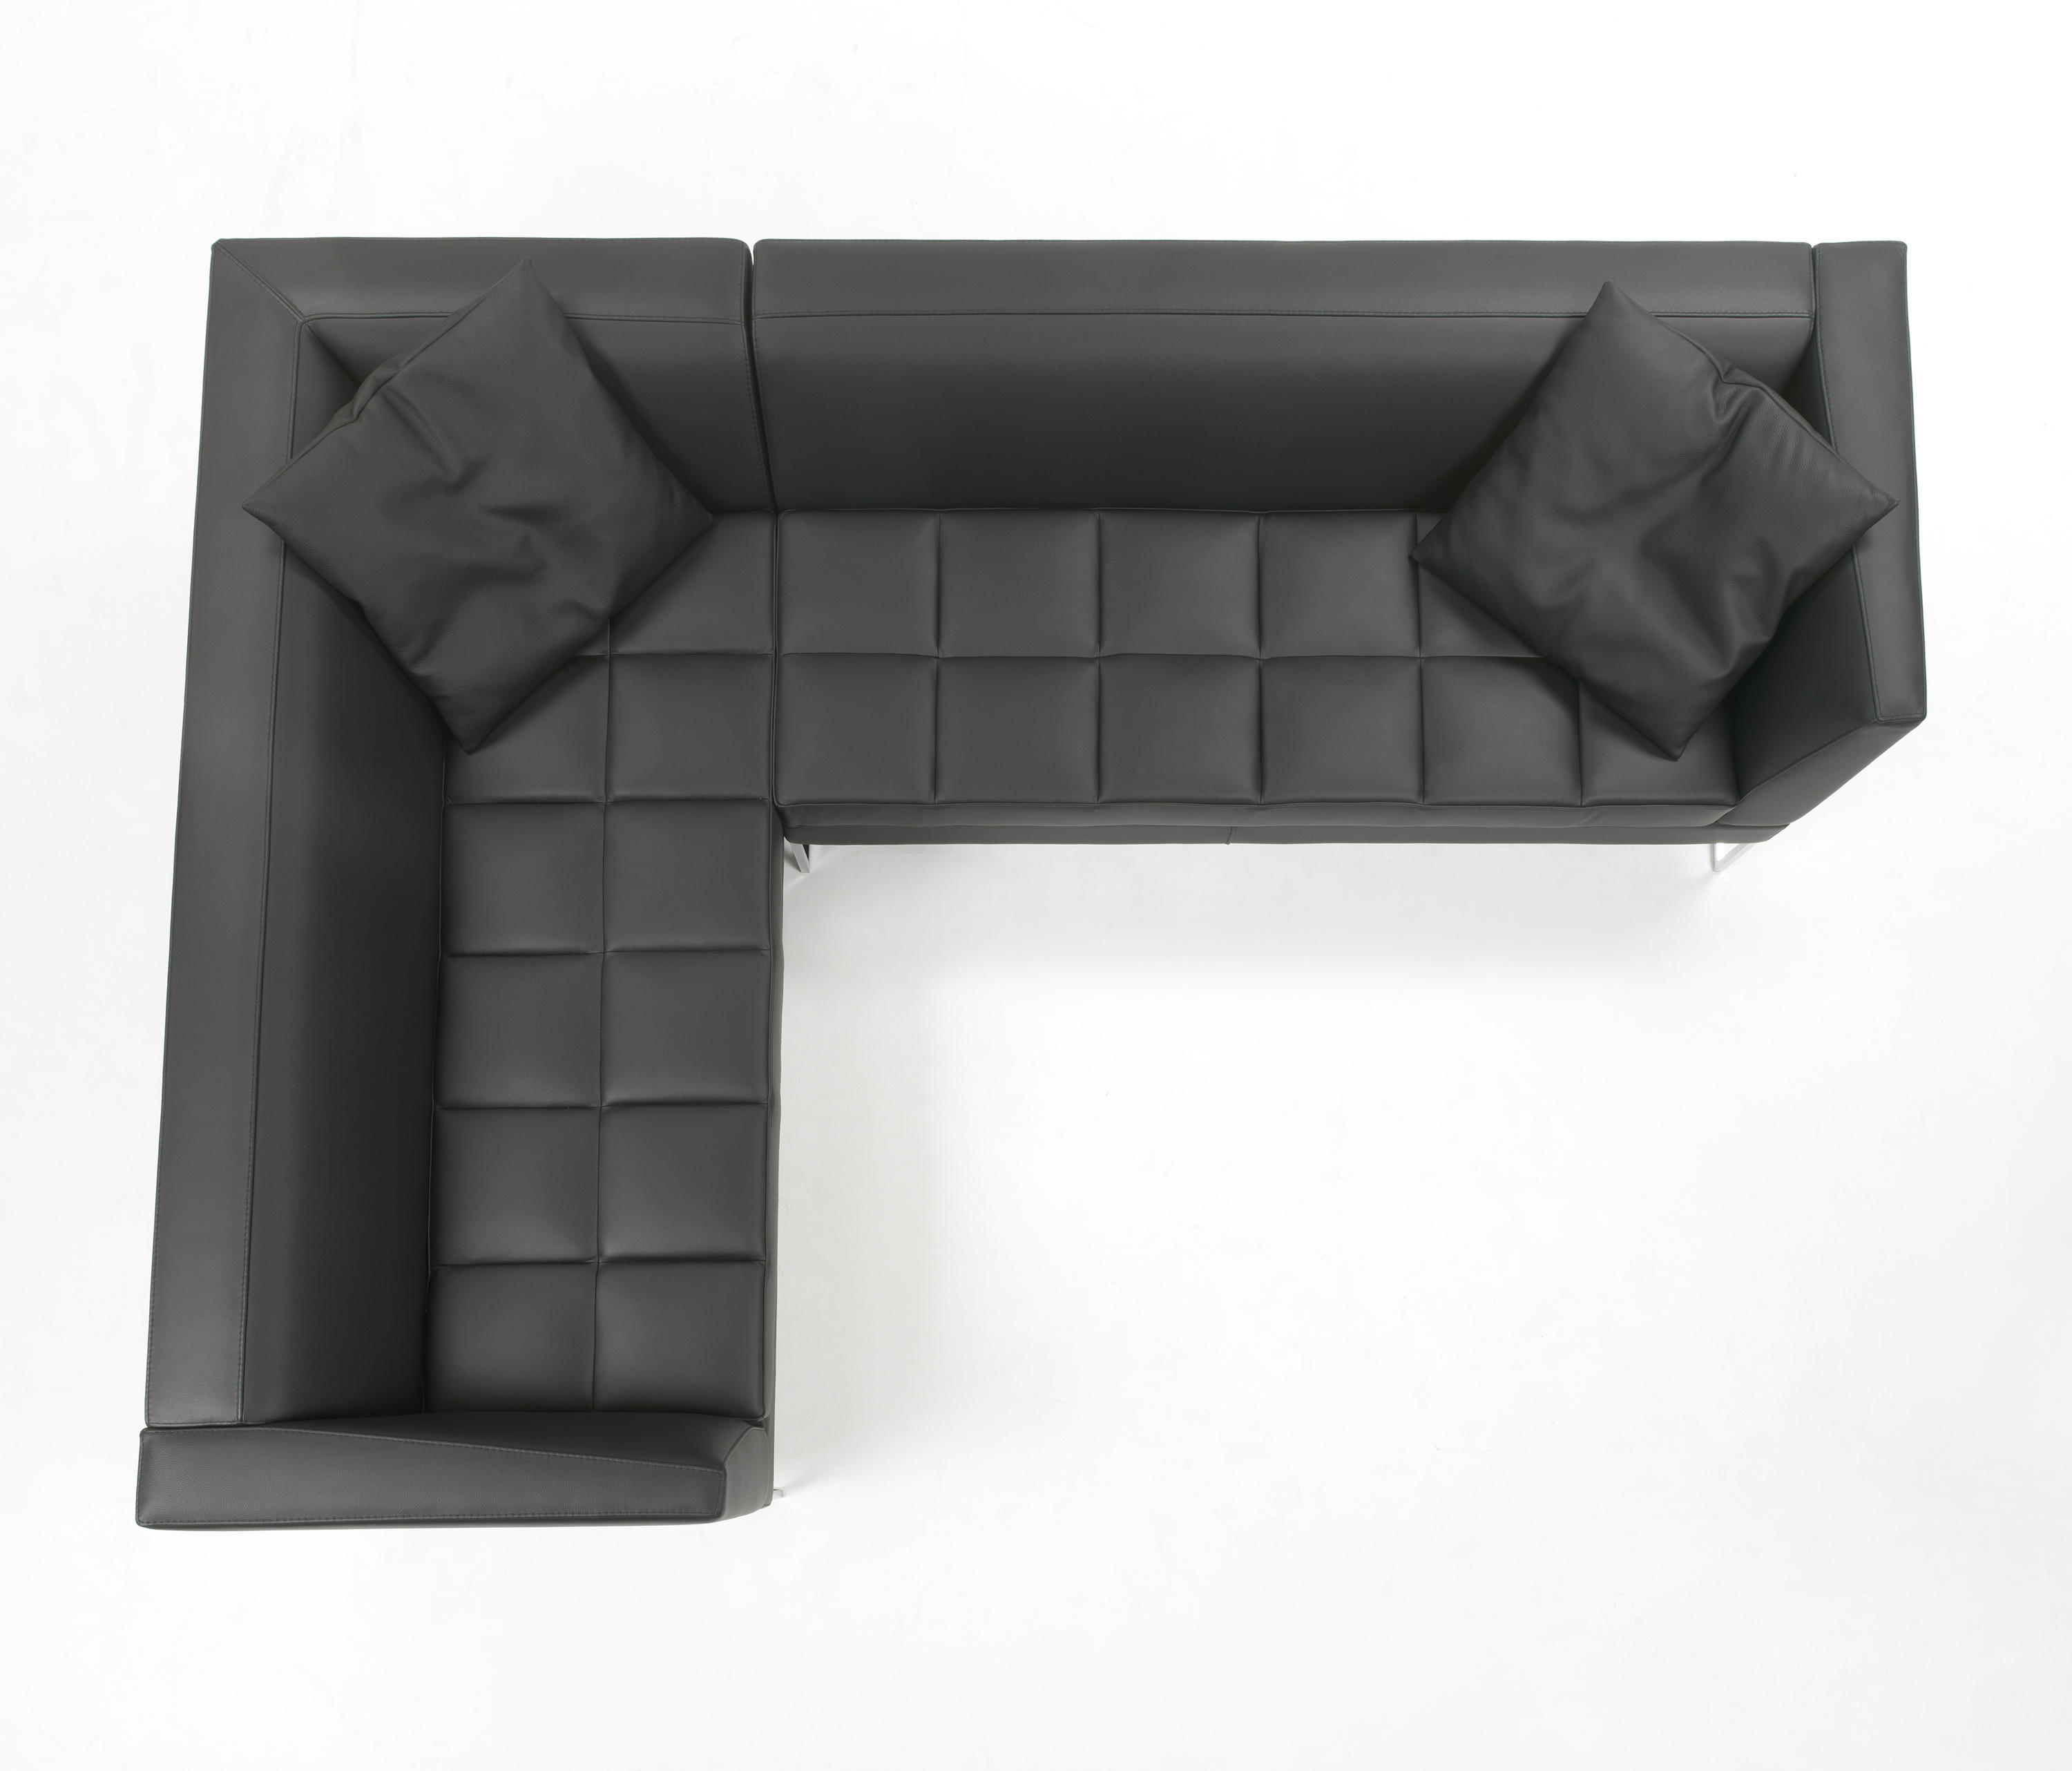 Madison xl sofa modular seating systems from giulio marelli madison xl sofa by giulio marelli modular seating systems parisarafo Gallery